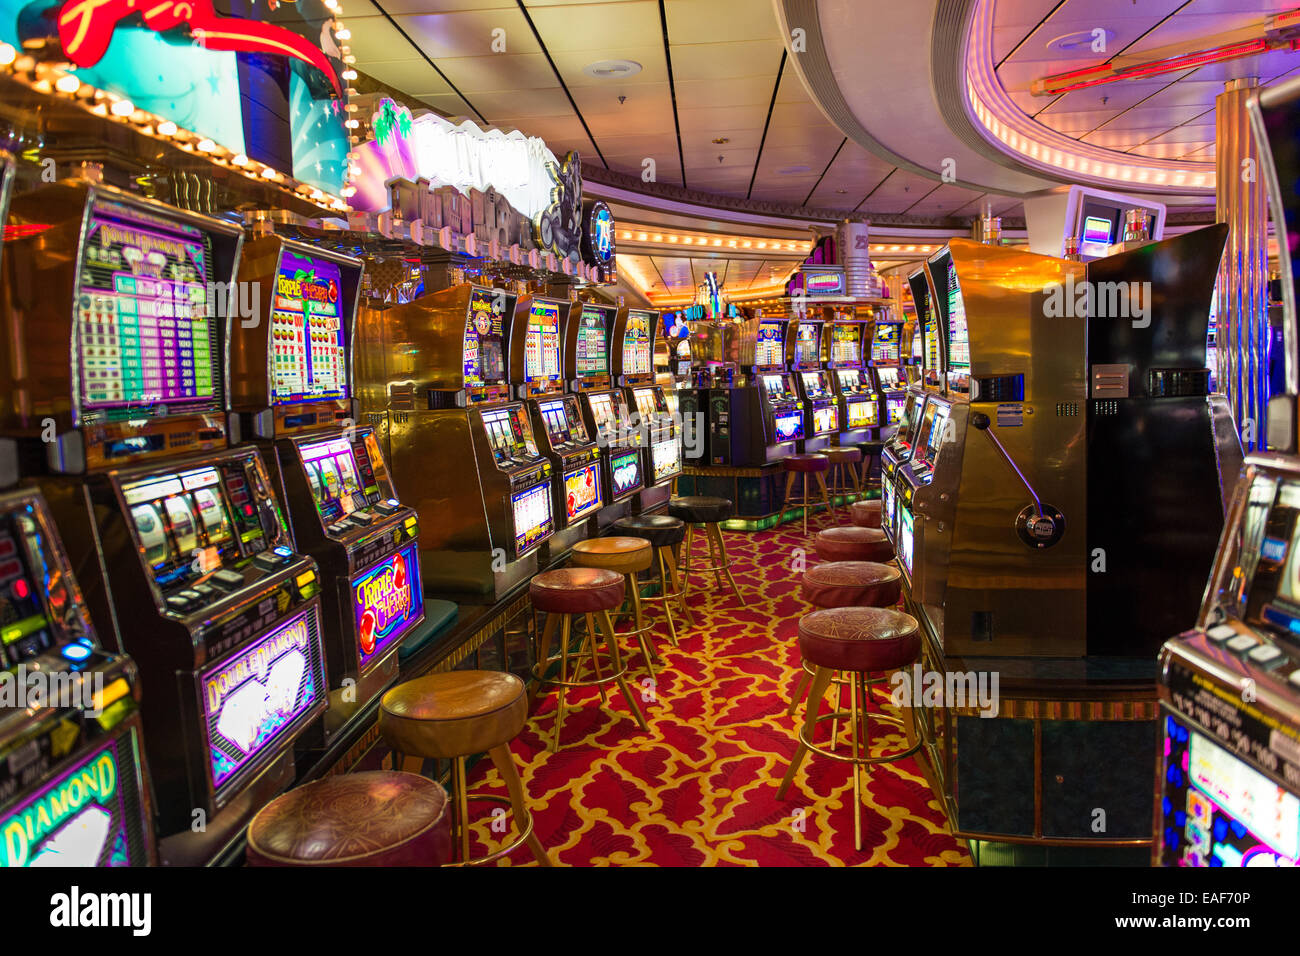 Cruise Ship Slots Do Cruise Ships Tighten Slots During the Cruise?By Jerry